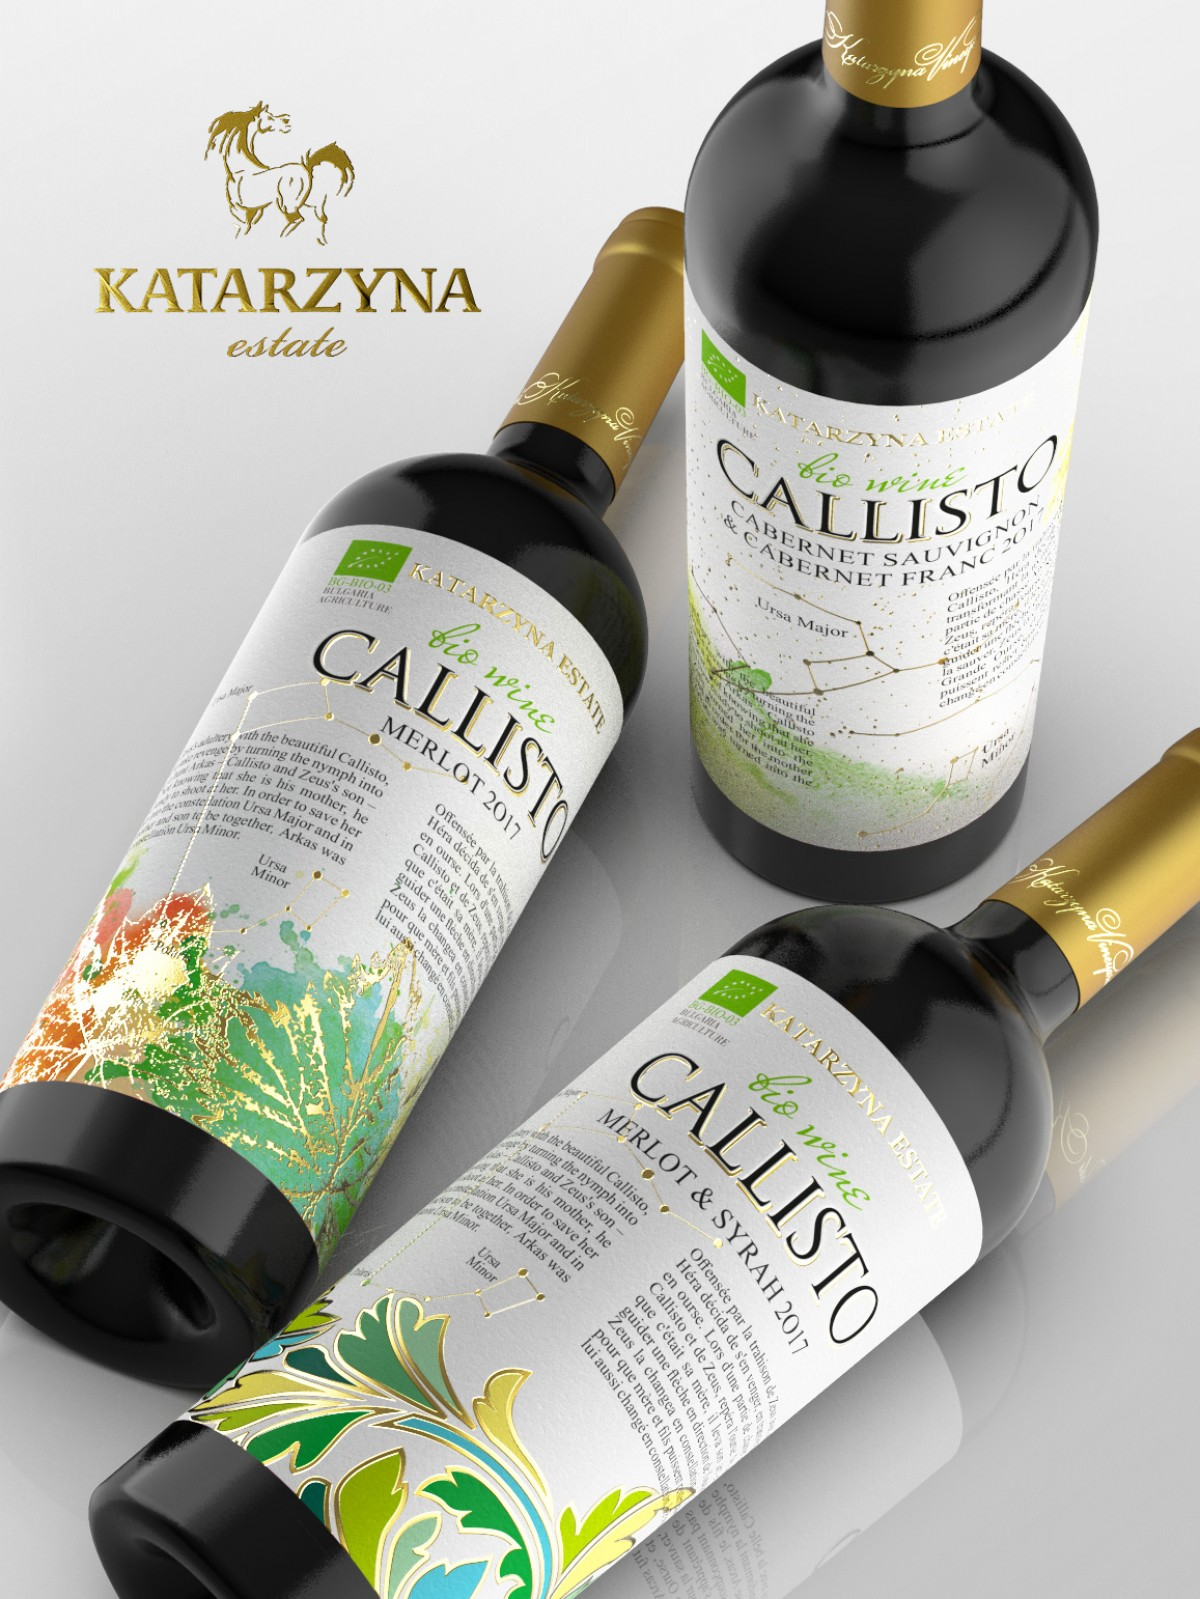 Katarzyna Estate in top 10 of worldwide rating with the wine Encore Syrah